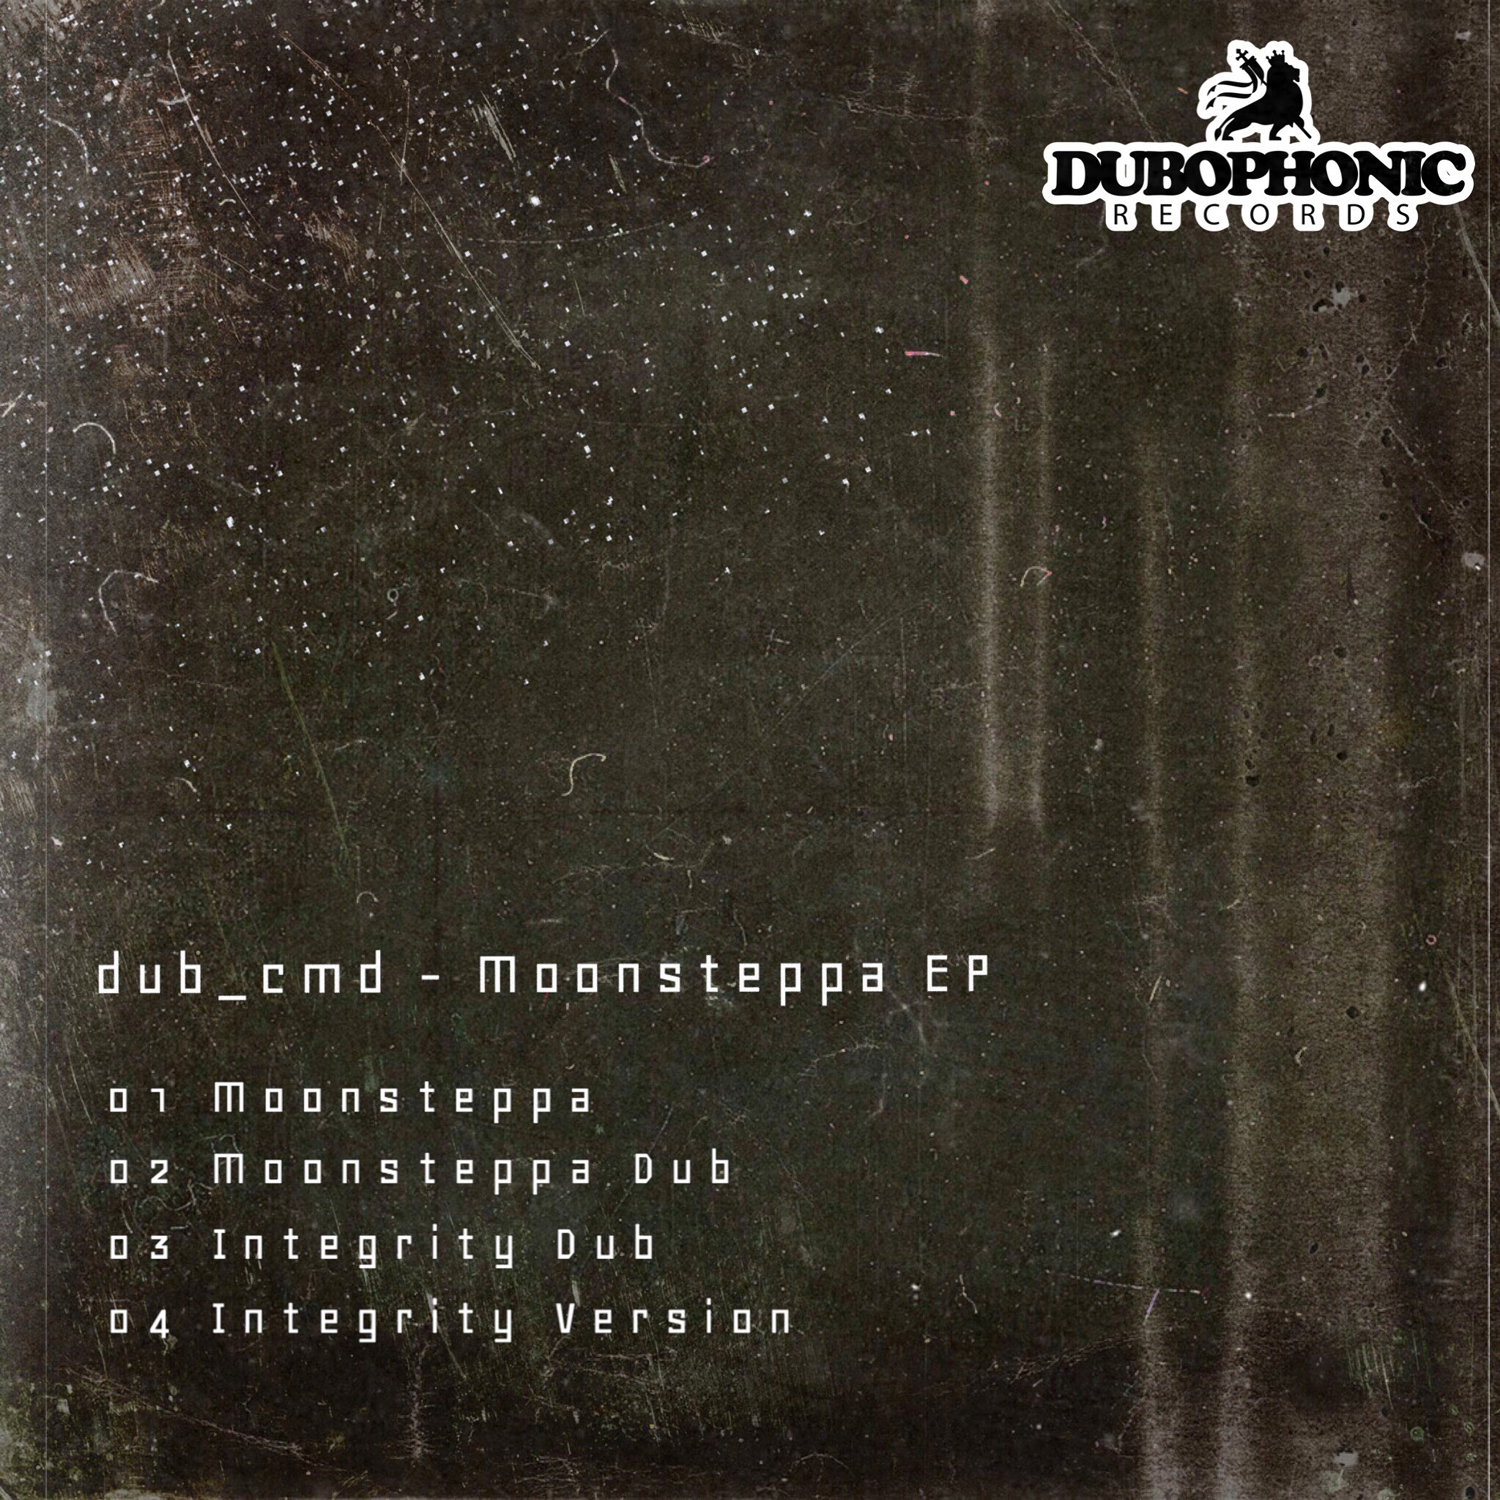 dub cmd - Moonsteppa / Dubophonic Records 2019